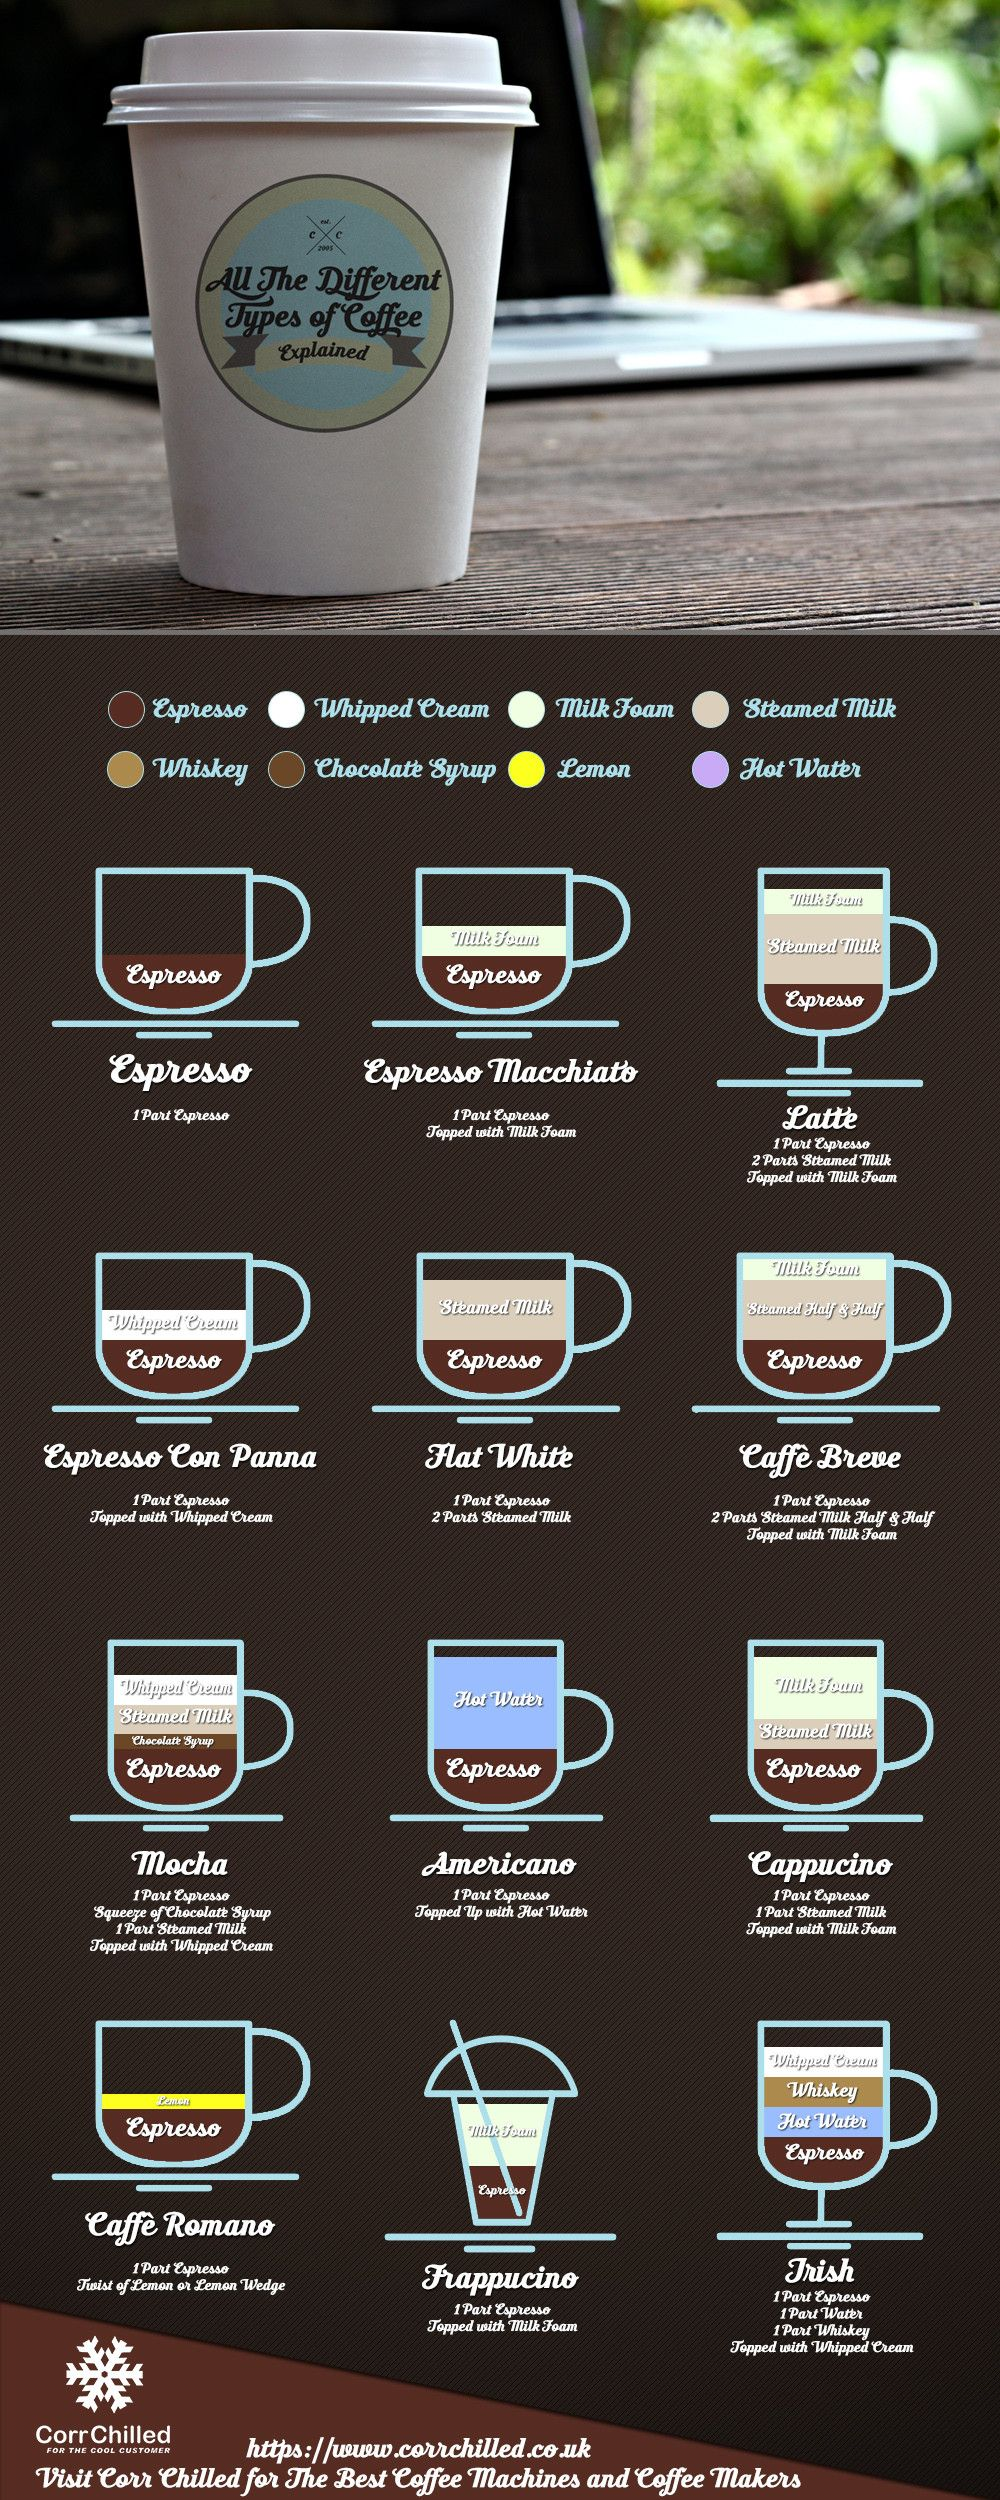 All the different types of coffee explained in a nice